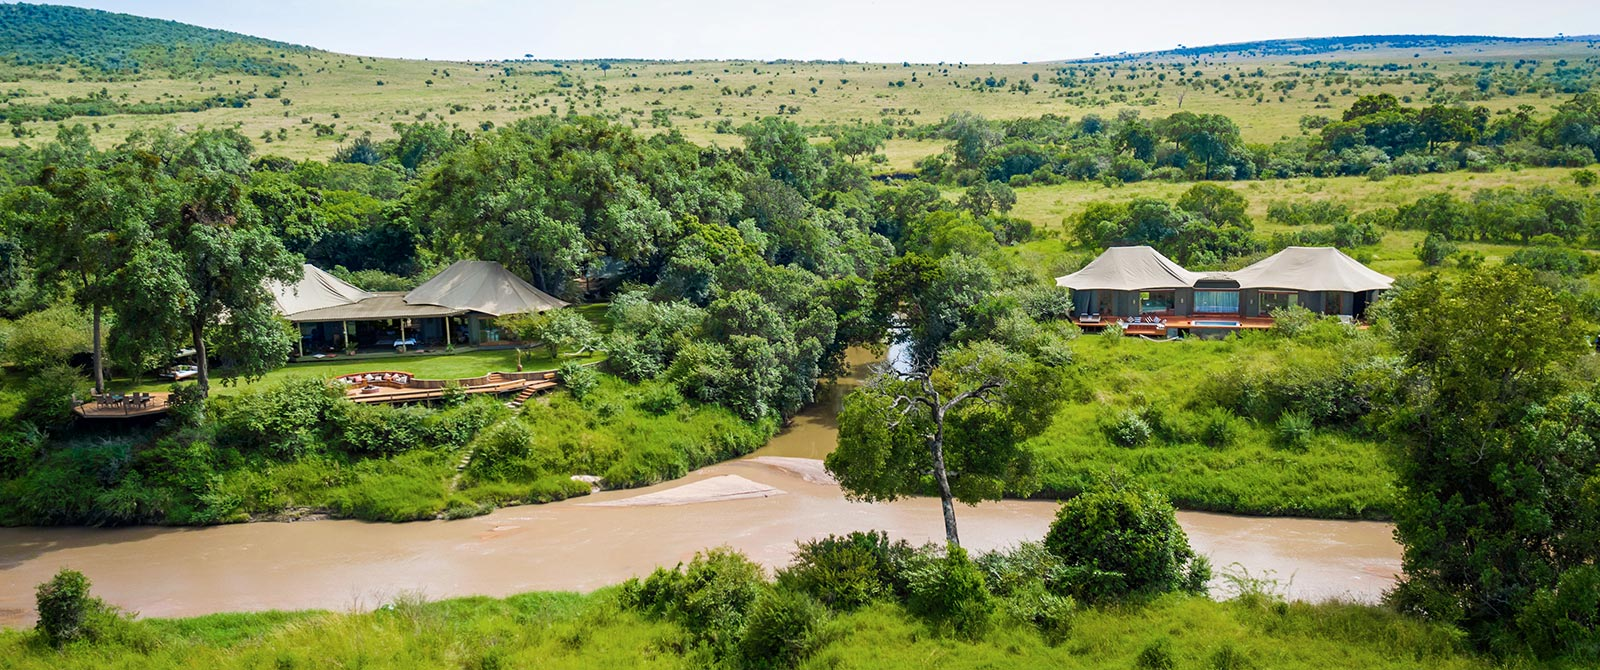 Great Migration Safaris - Exclusive Sala's Camp in Masai Mara - Romantic Kenya: Giraffe Manor and Masai Mara Safari